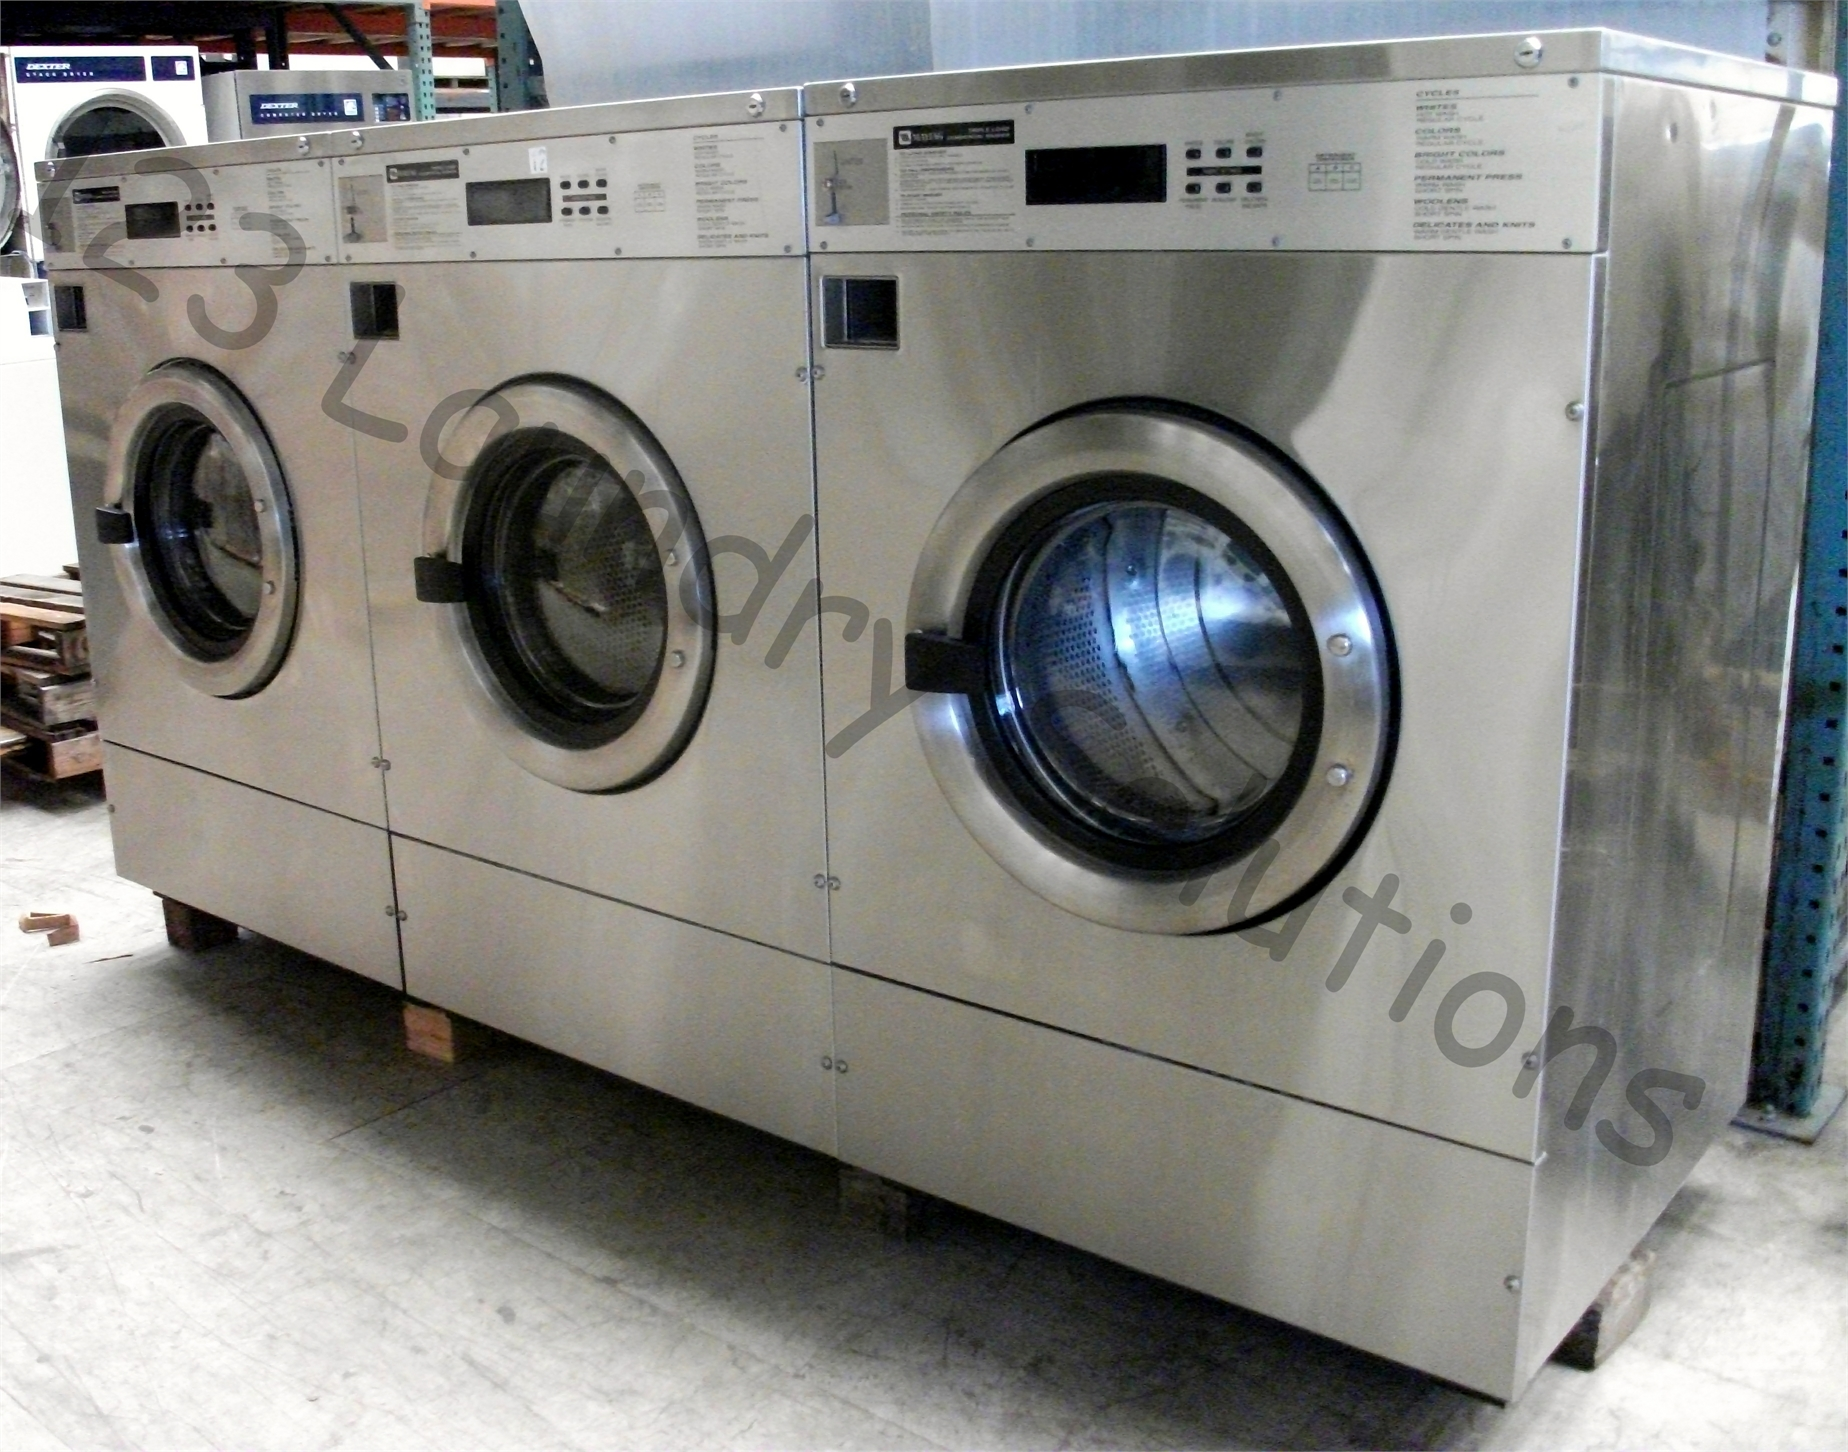 Maytag Washer Extractor ~ Maytag lb front load washer v hz ph mfr pdavs